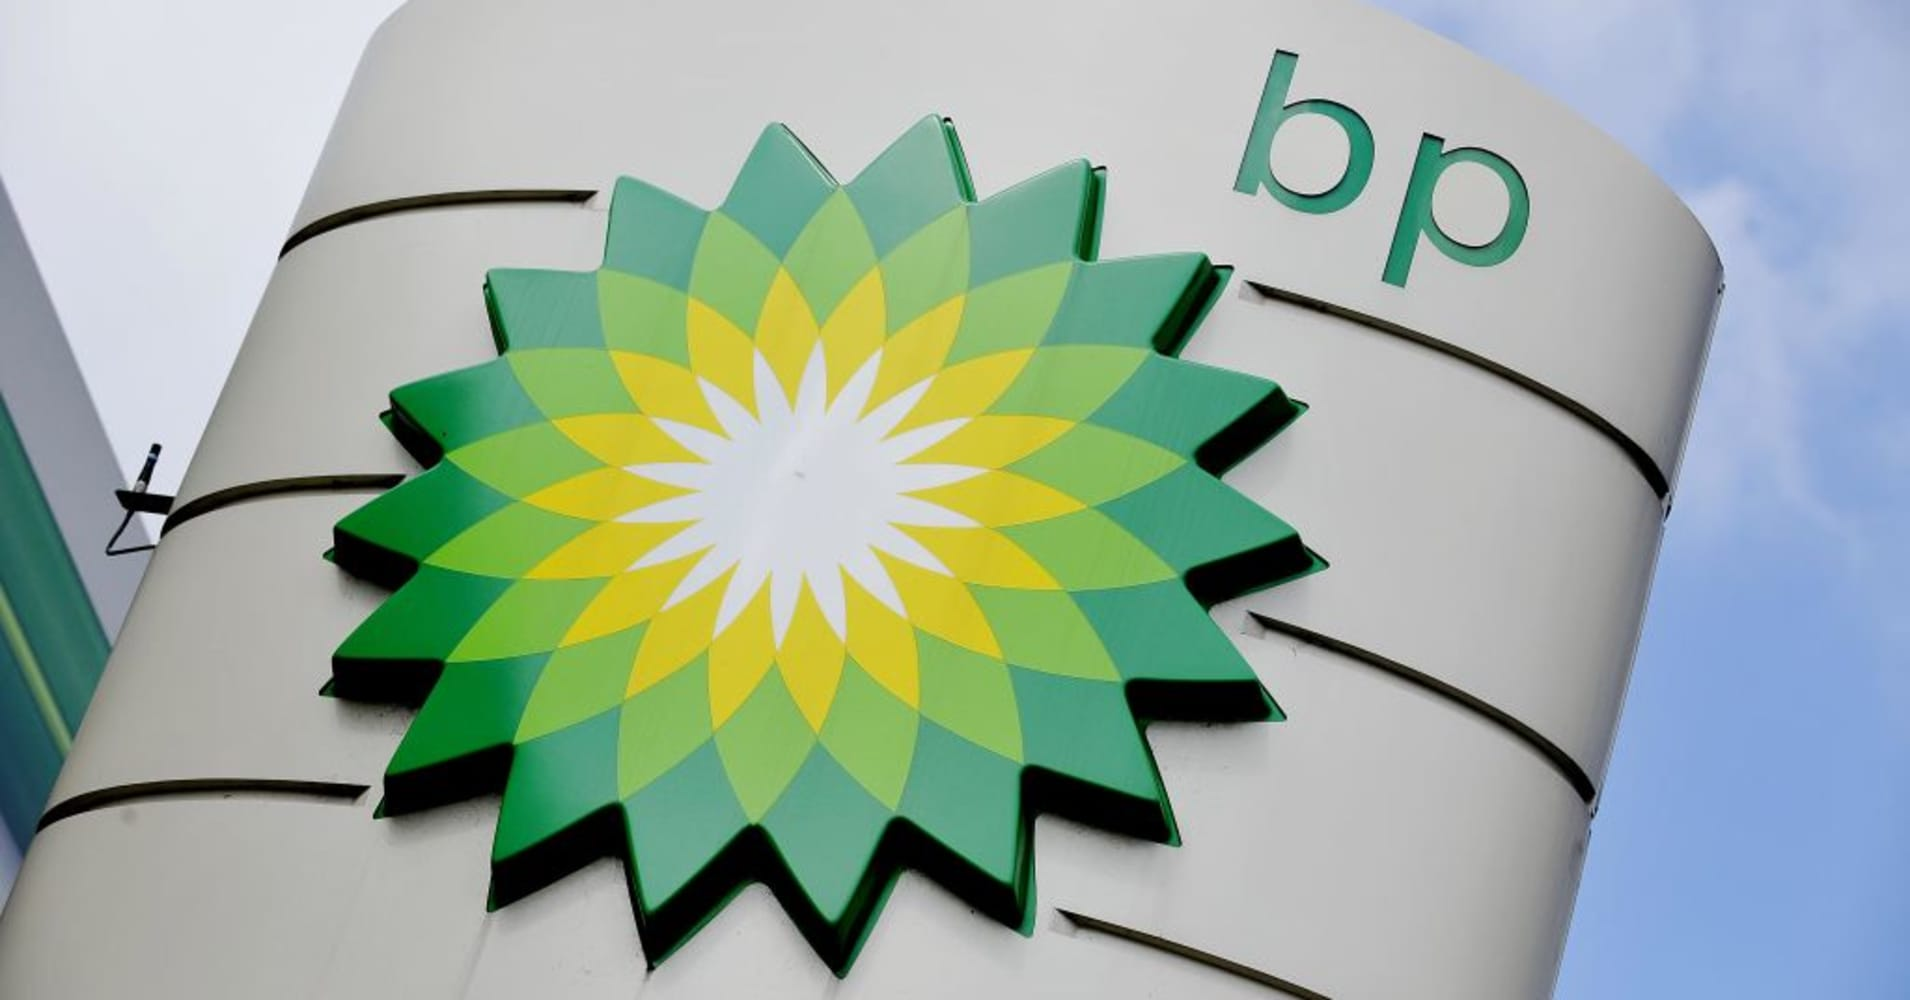 Bp Buys Bhp Shale Assets To Beef Up Us Business